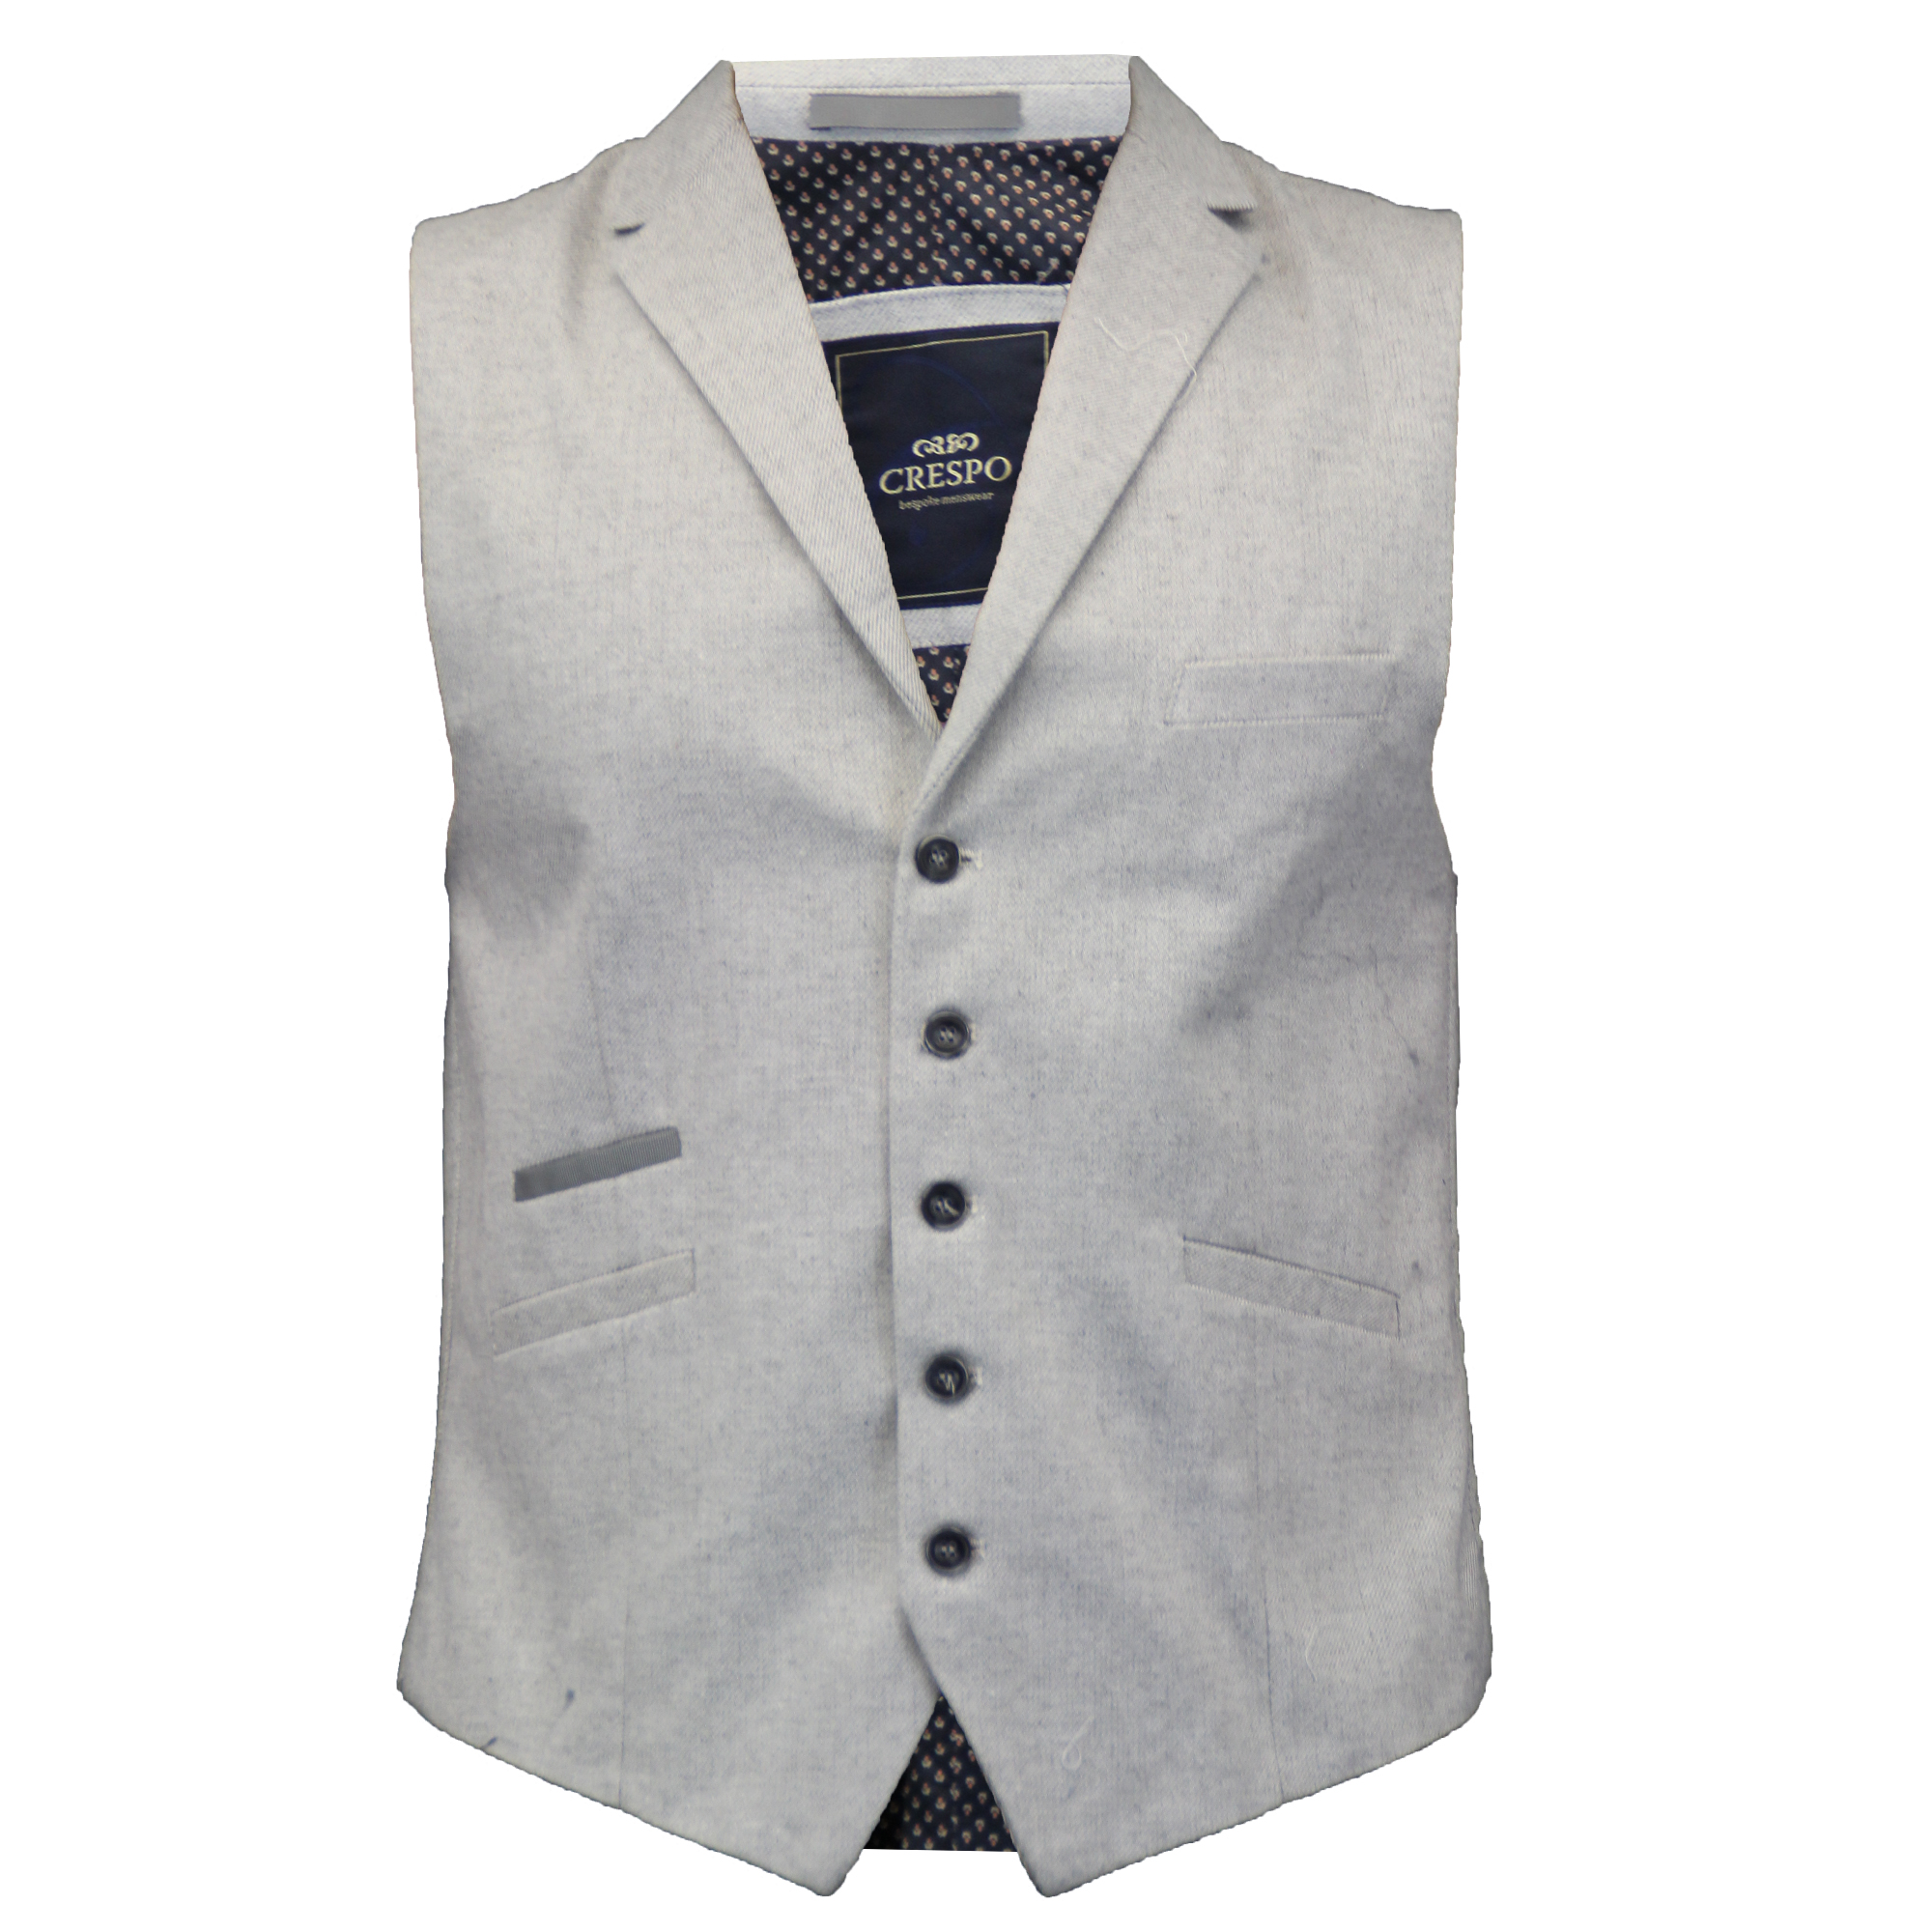 Gentleman Formal Vest Waistcoat for Birthday Party Stage Performance ENGLAND ST GEORGES DESIGN WAISTCOAT FUN & FANCY FOR ALL OCCASIONS FESTIVAL PARTIES HOLIDAYS STAG DO'S SPORTS EVENTS AVAILABLE IN S,M,L,XL. by L & S Prints. £ out of 5 stars 9.